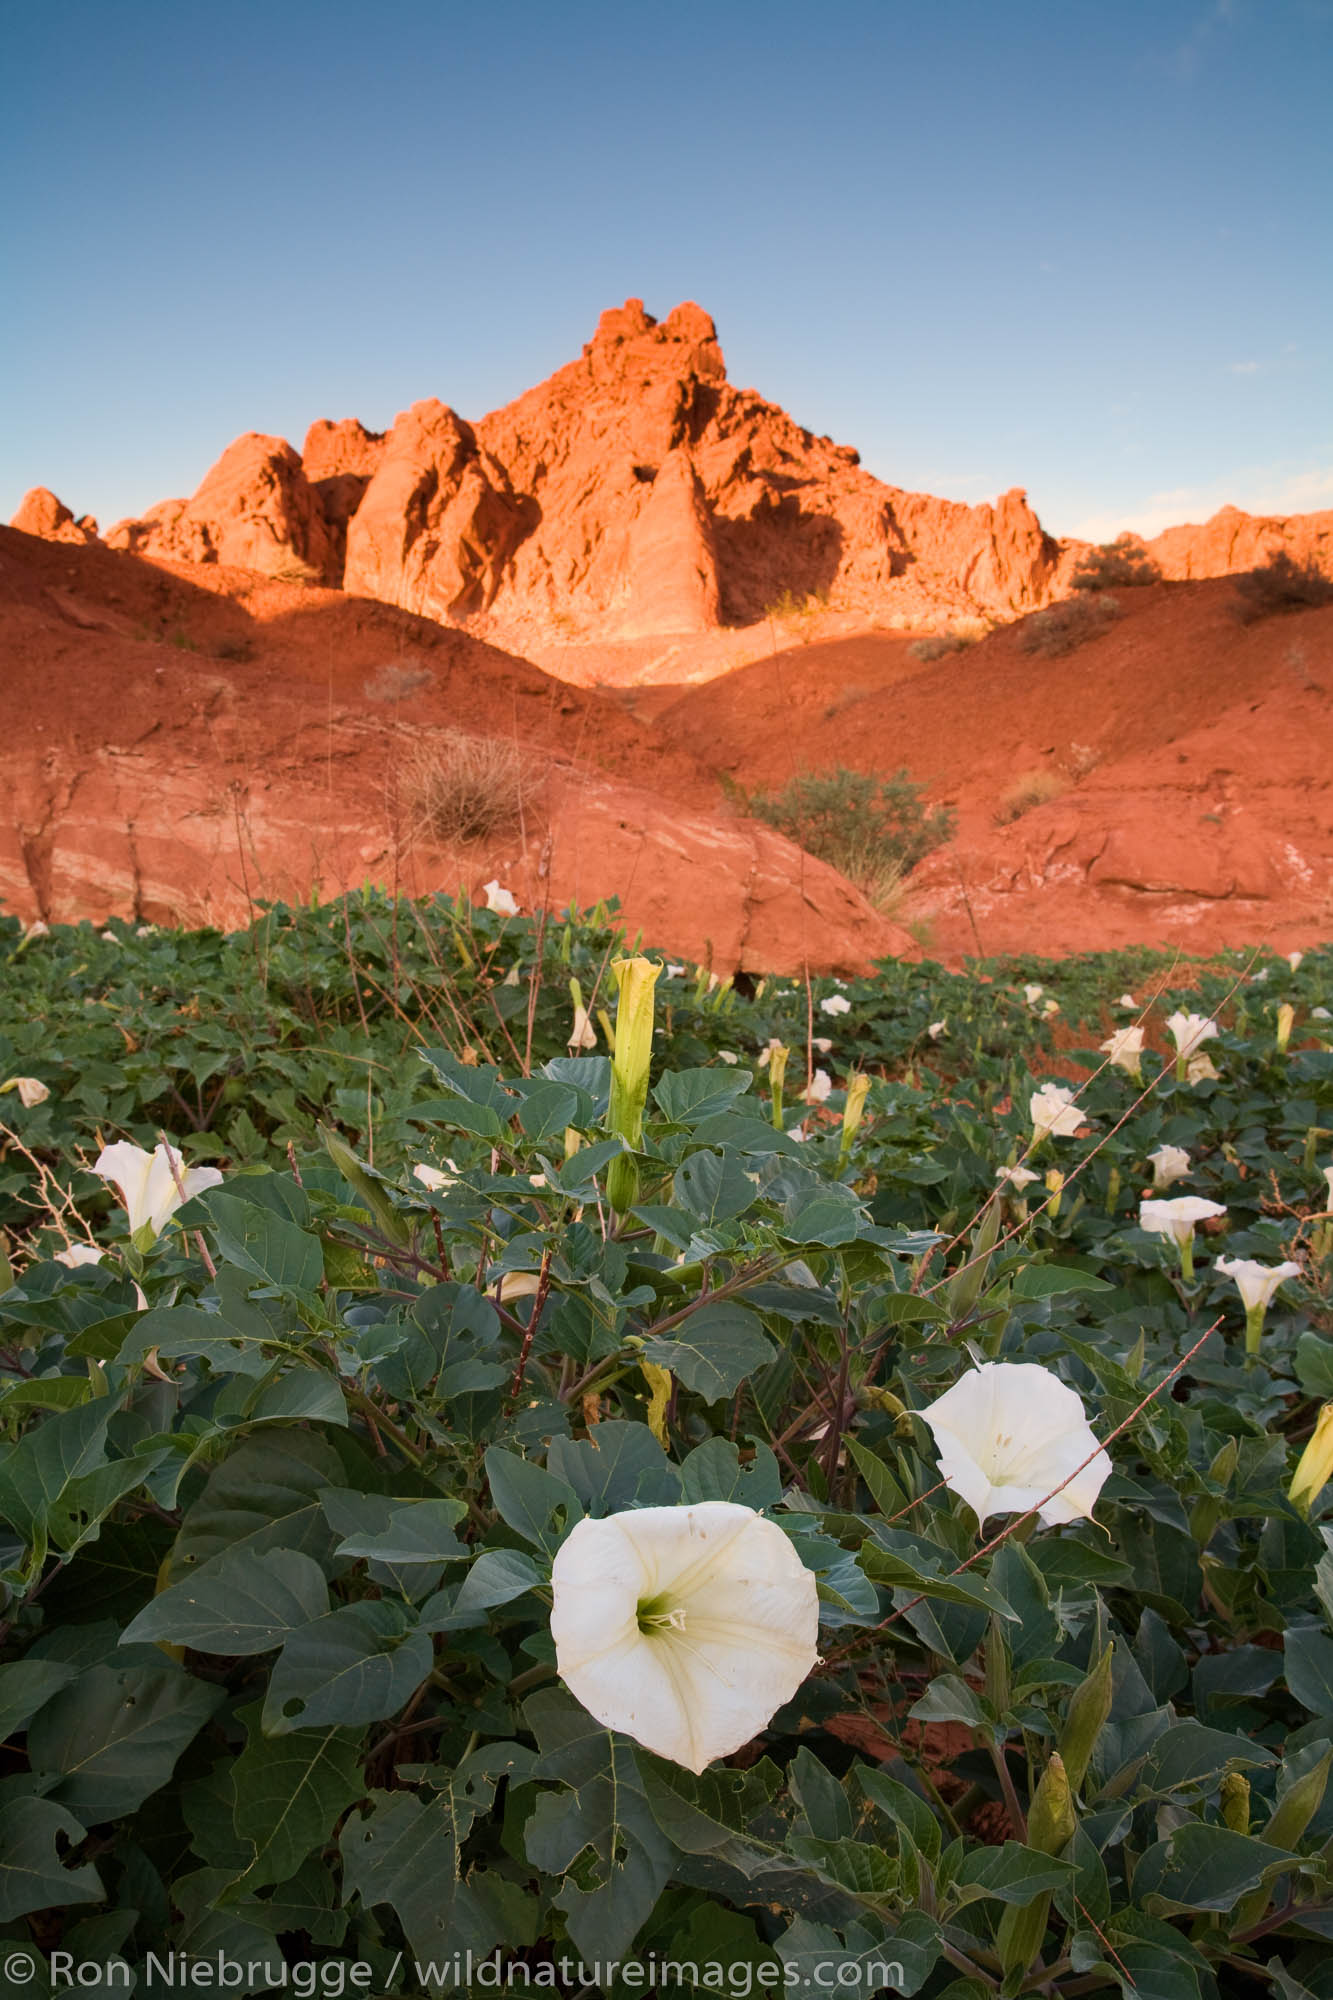 Sacred datura wildflowers in the Valley of Fire State Park, Nevada